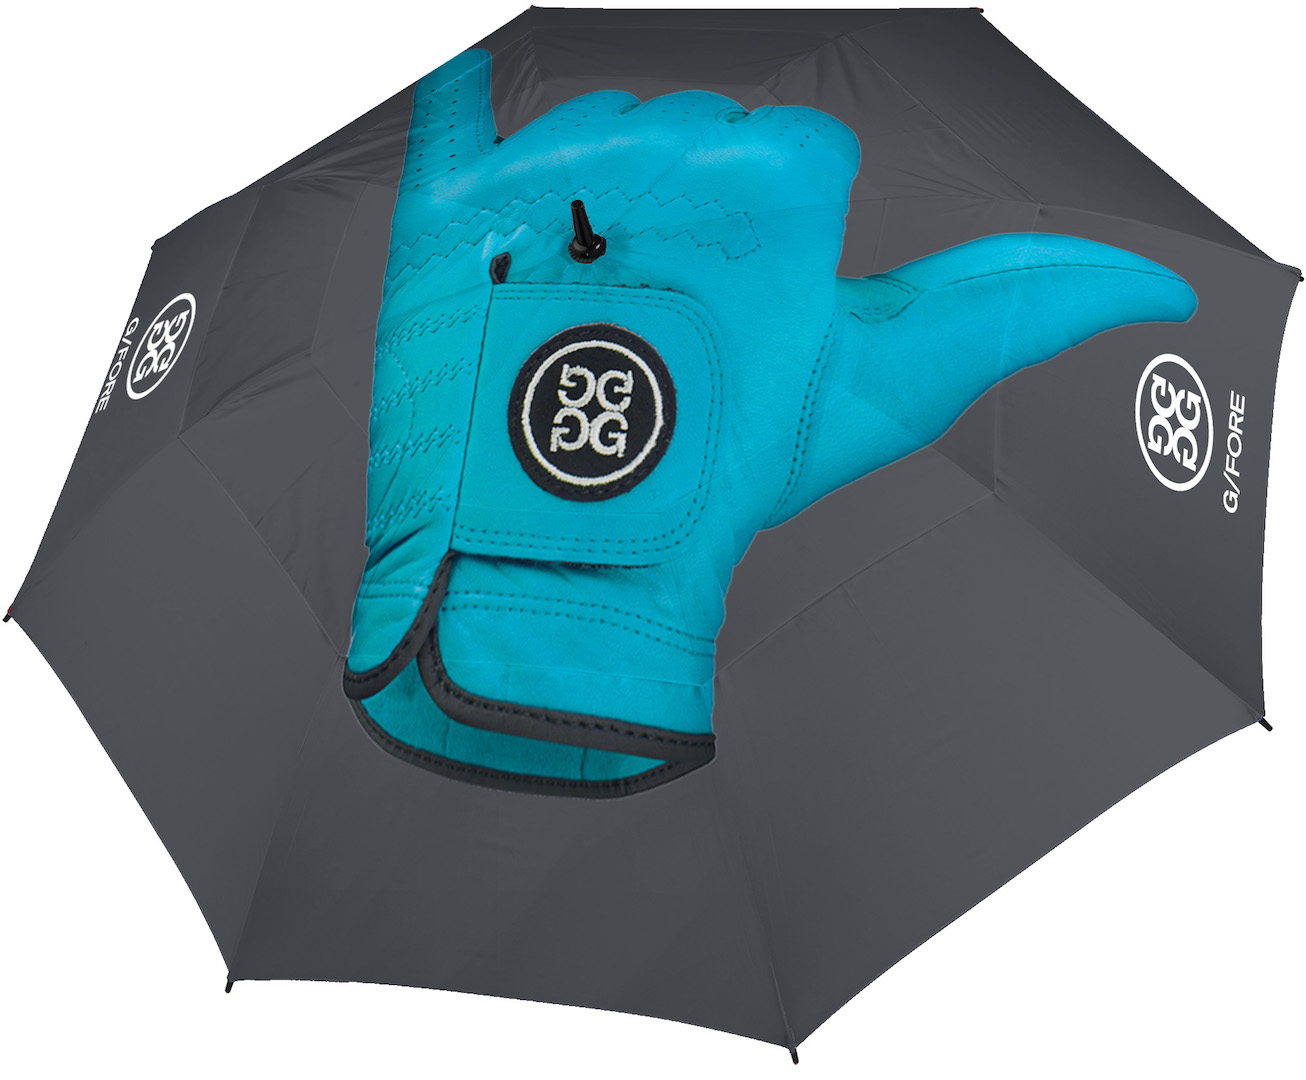 Surf's up for new G/Fore Umbrella